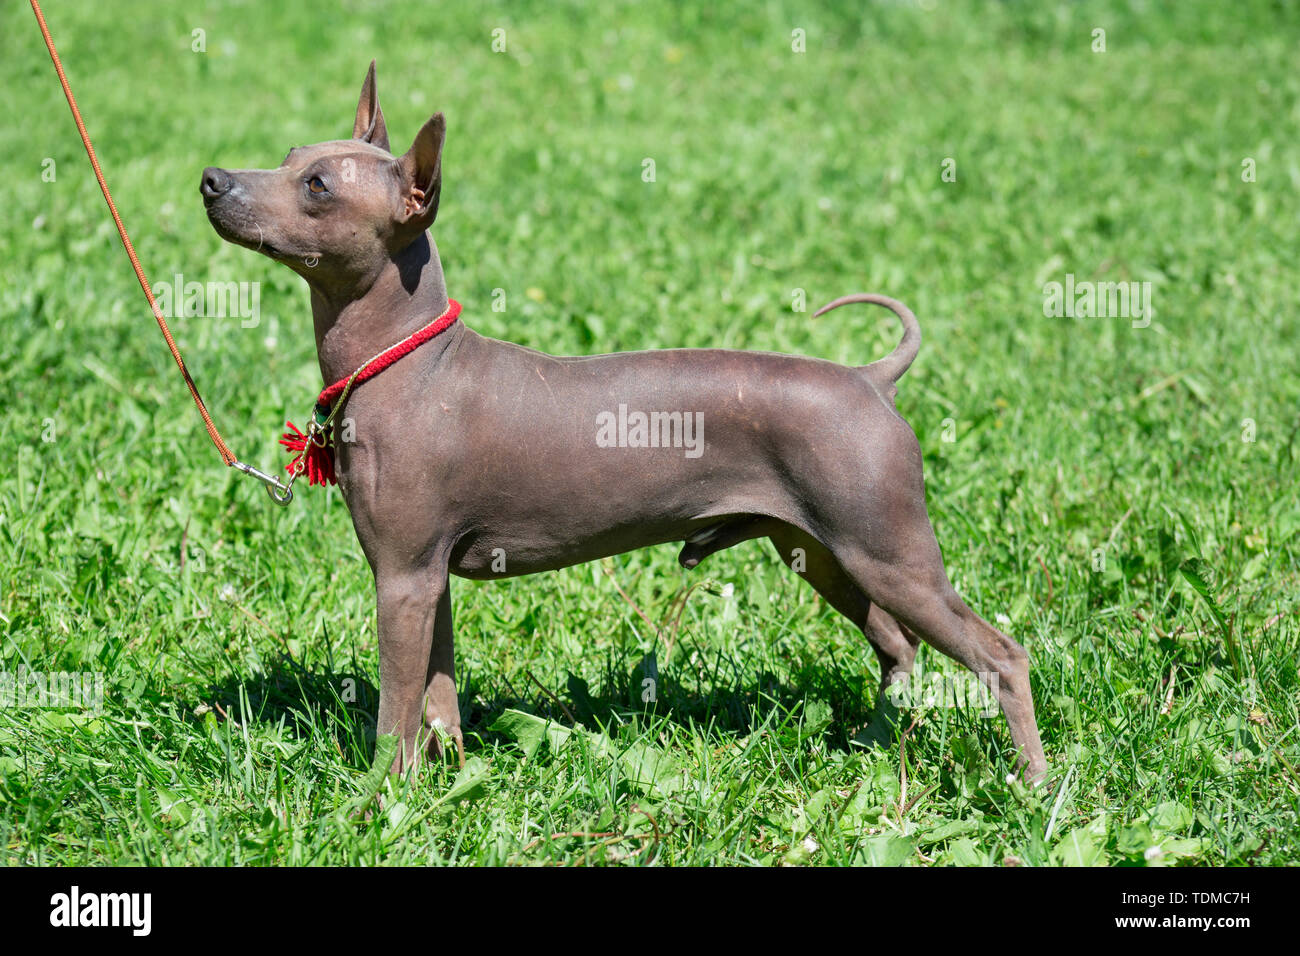 American hairless terrier puppy is standing on a green meadow. Pet animals. - Stock Image